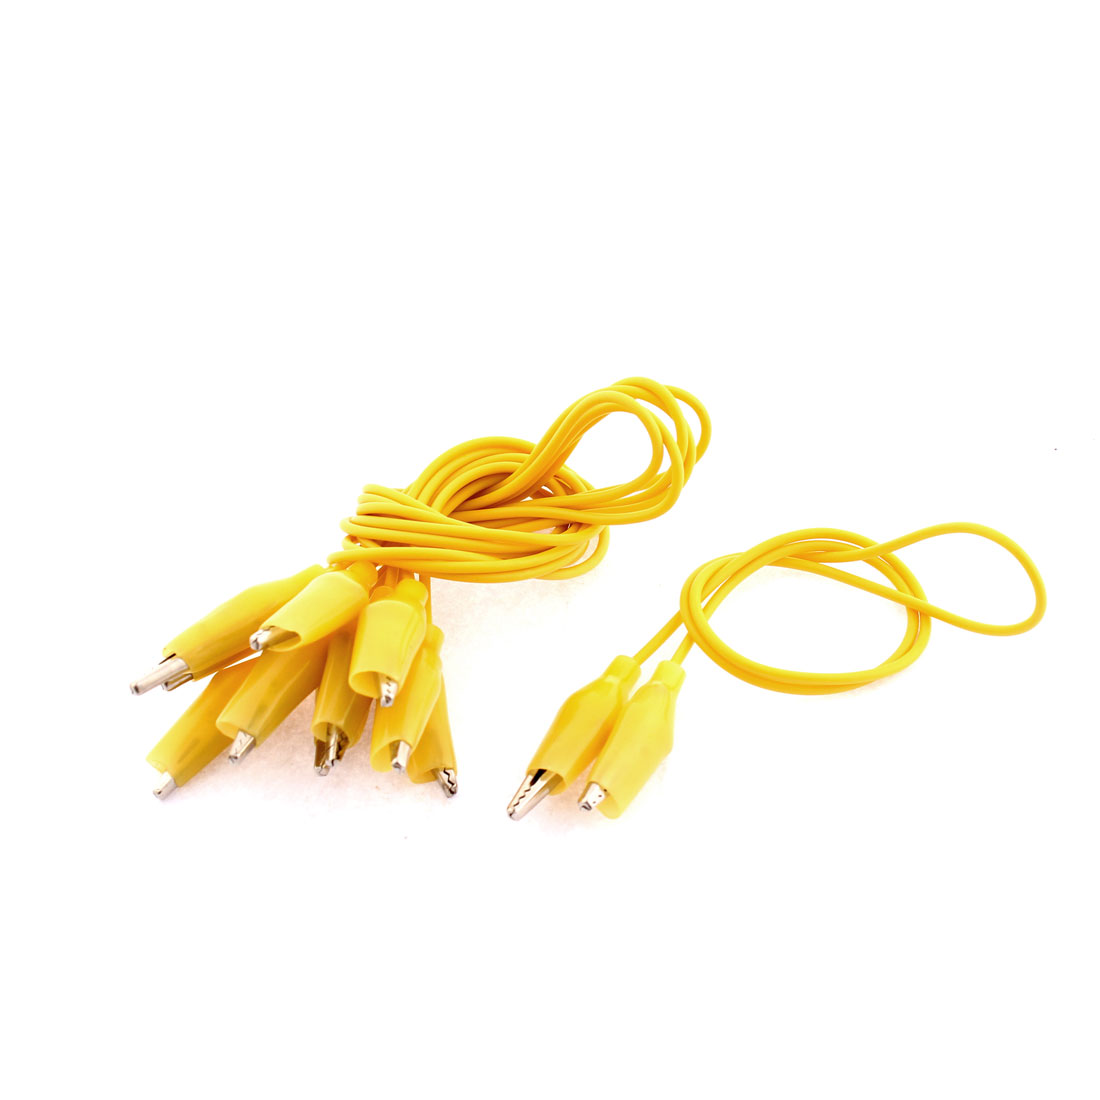 6pcs Electrical Double Ended Alligator Clip Test Lead Jumper Probe Wire Yellow